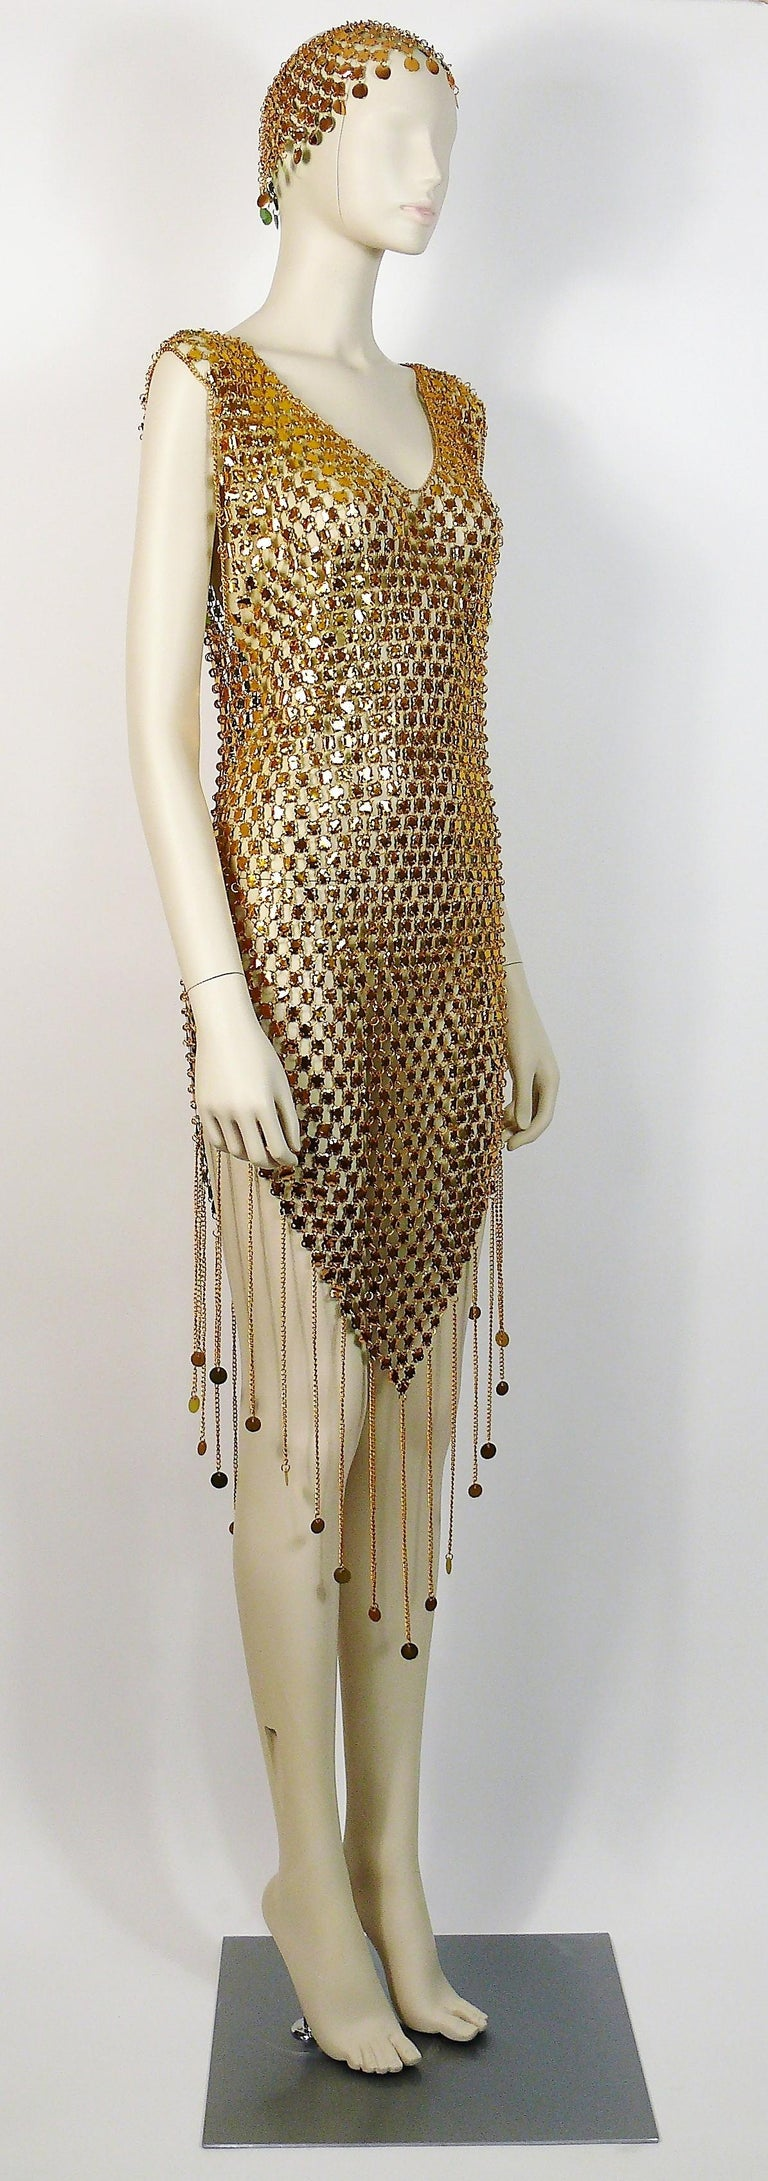 Gorgeous vintage 1970s chainmail dress featuring gold toned rhodoid quadrilobe discs linked with aluminium rings and fringes.  Slips on to wear.  The dress comes with its matching hat.  Photographied on a XS size mannequin.  Indicative measurements